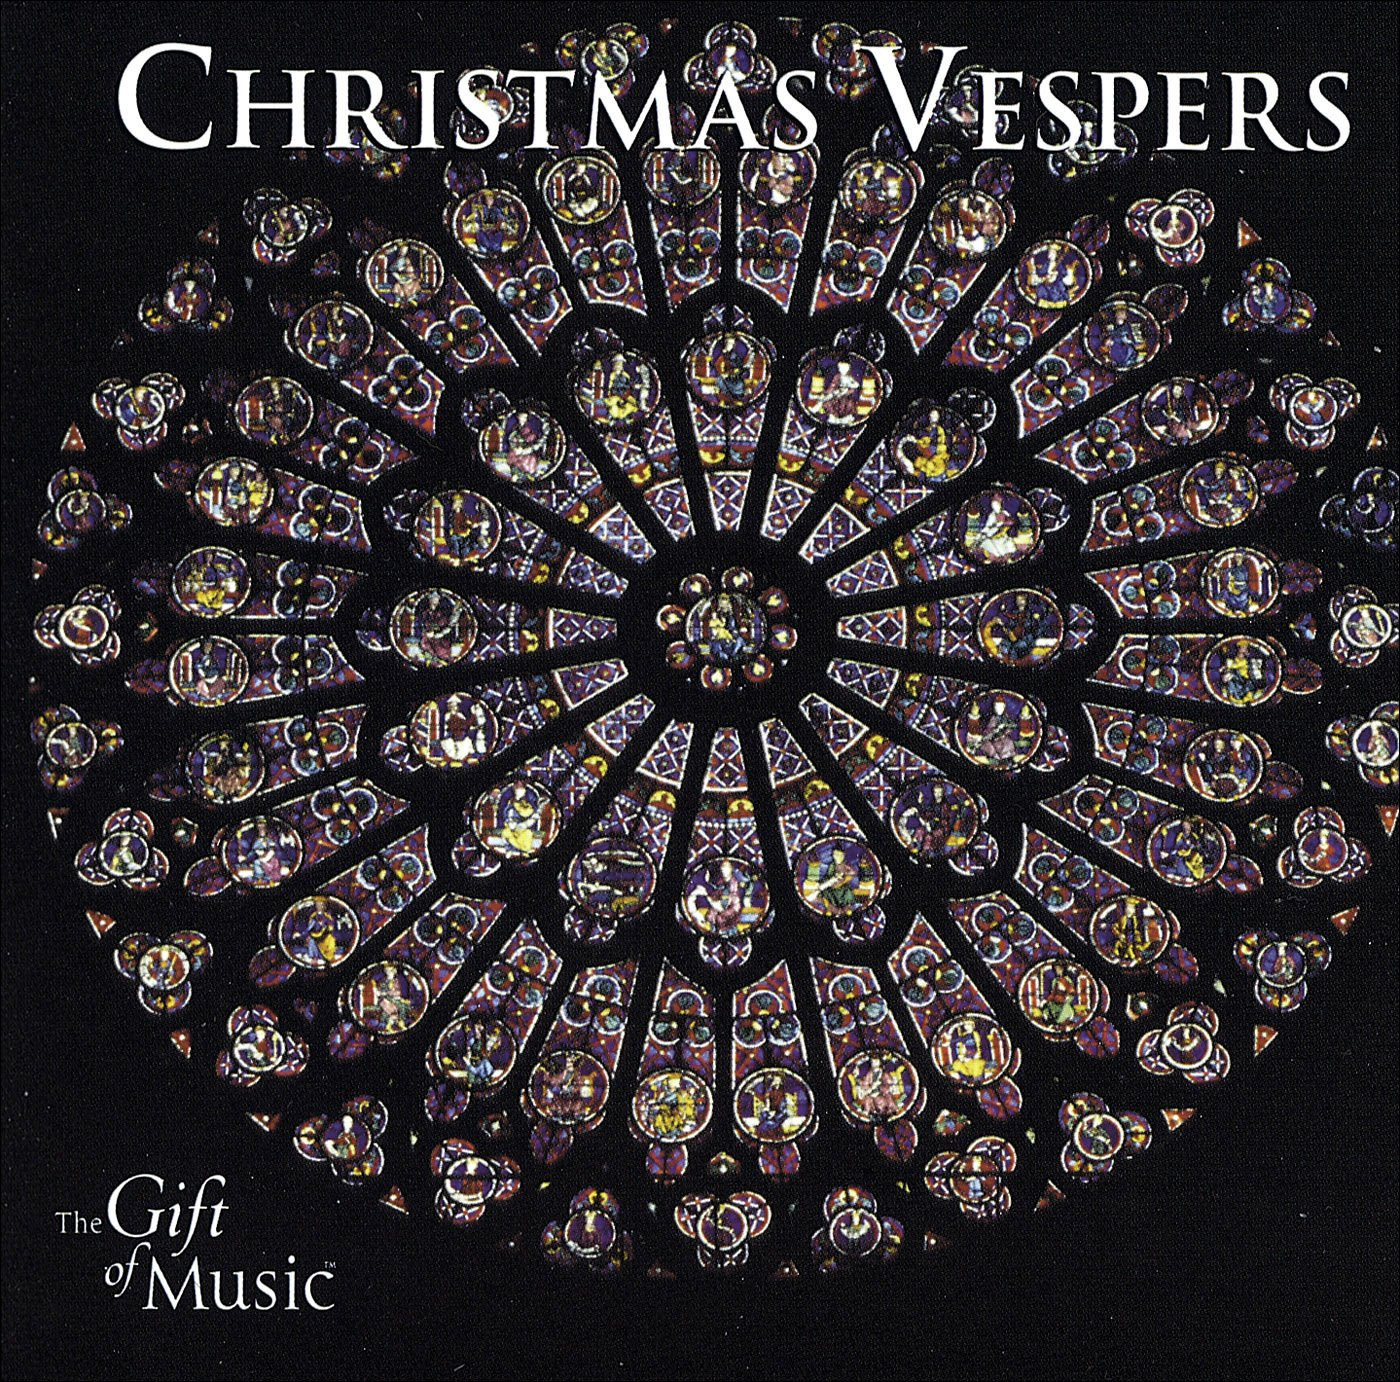 Christmas Vespers by The Gift of Music